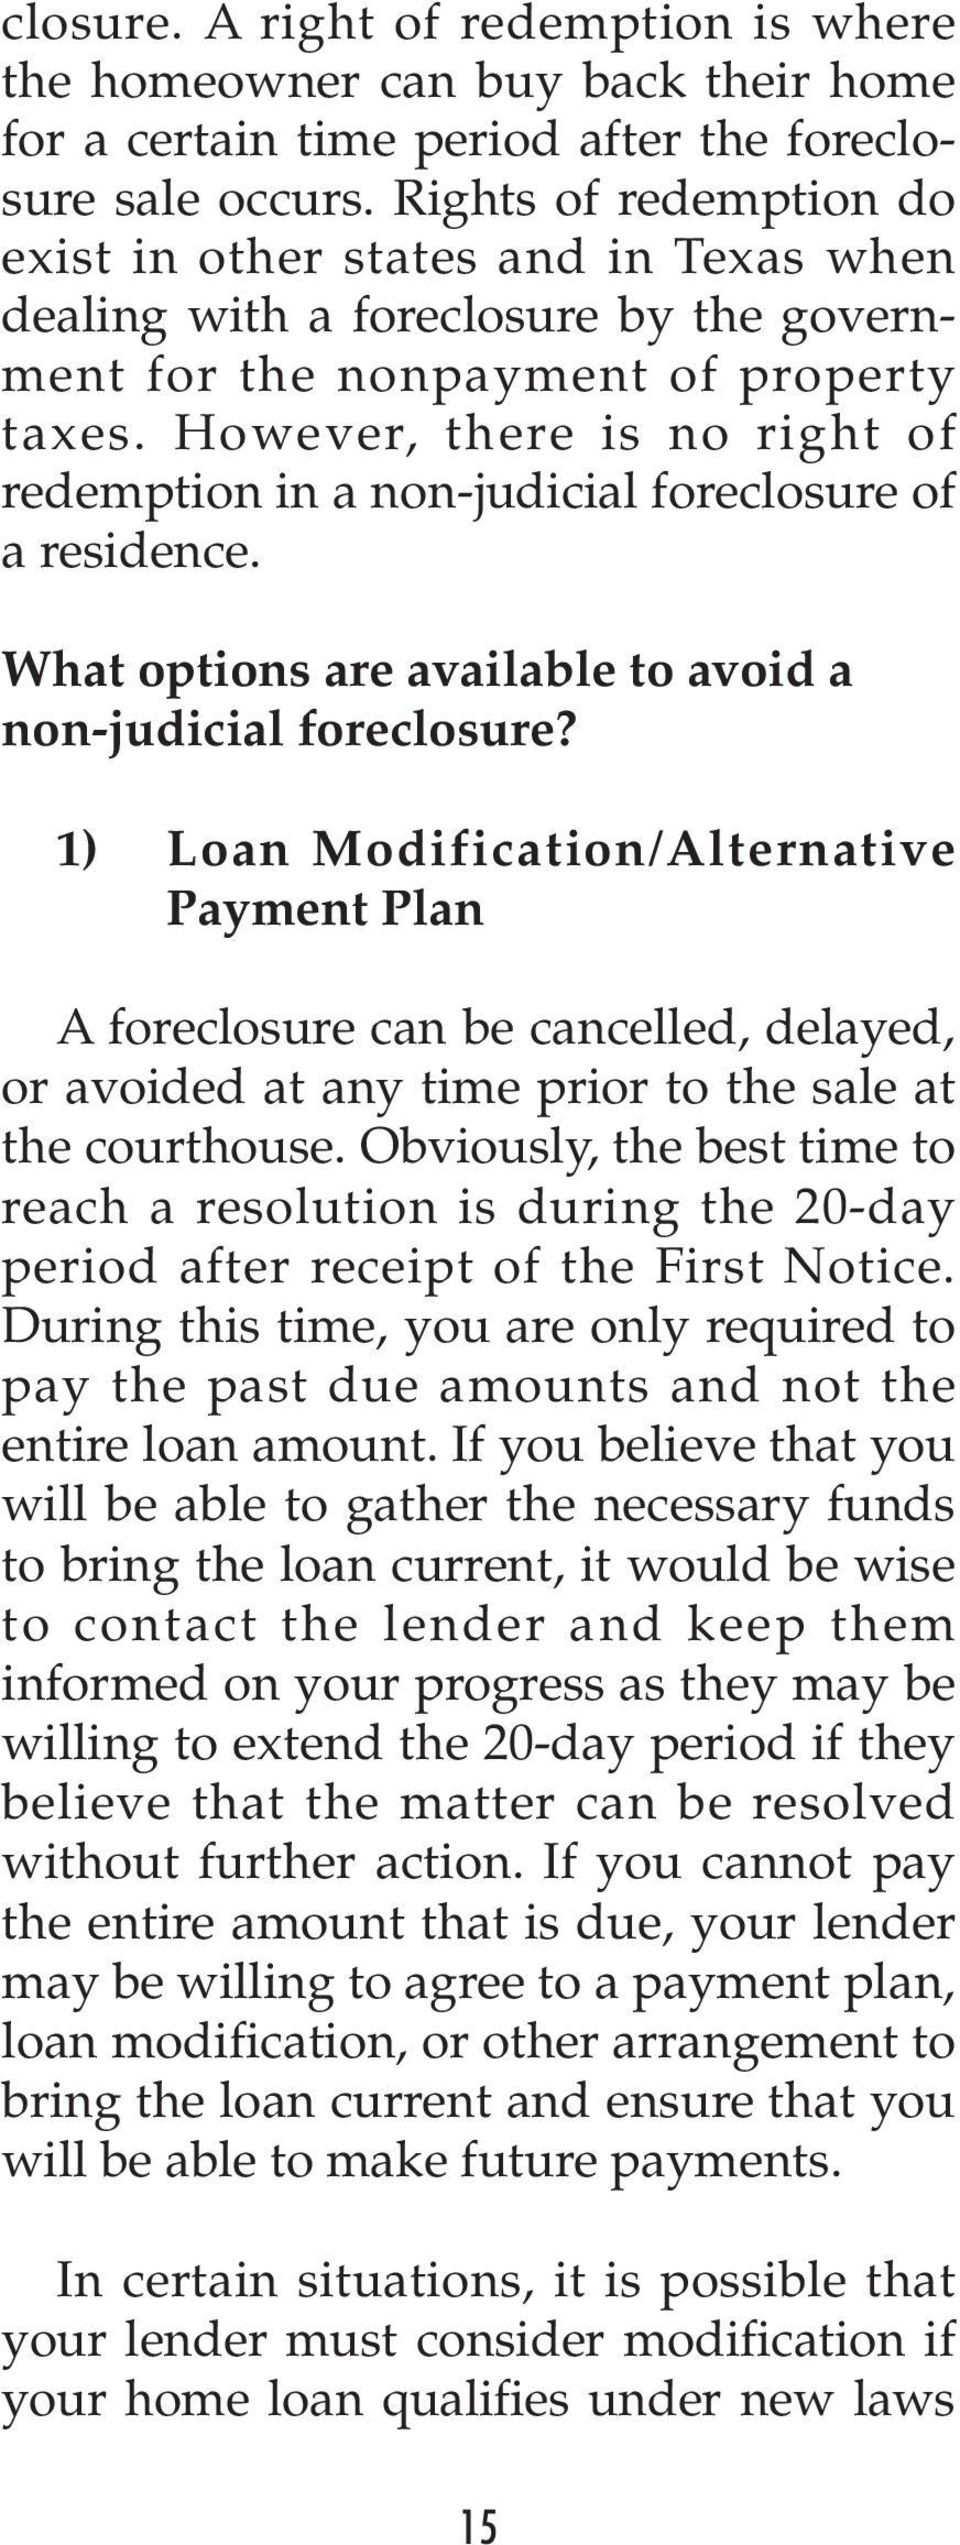 However, there is no right of redemption in a non-judicial foreclosure of a residence. What options are available to avoid a non-judicial foreclosure?